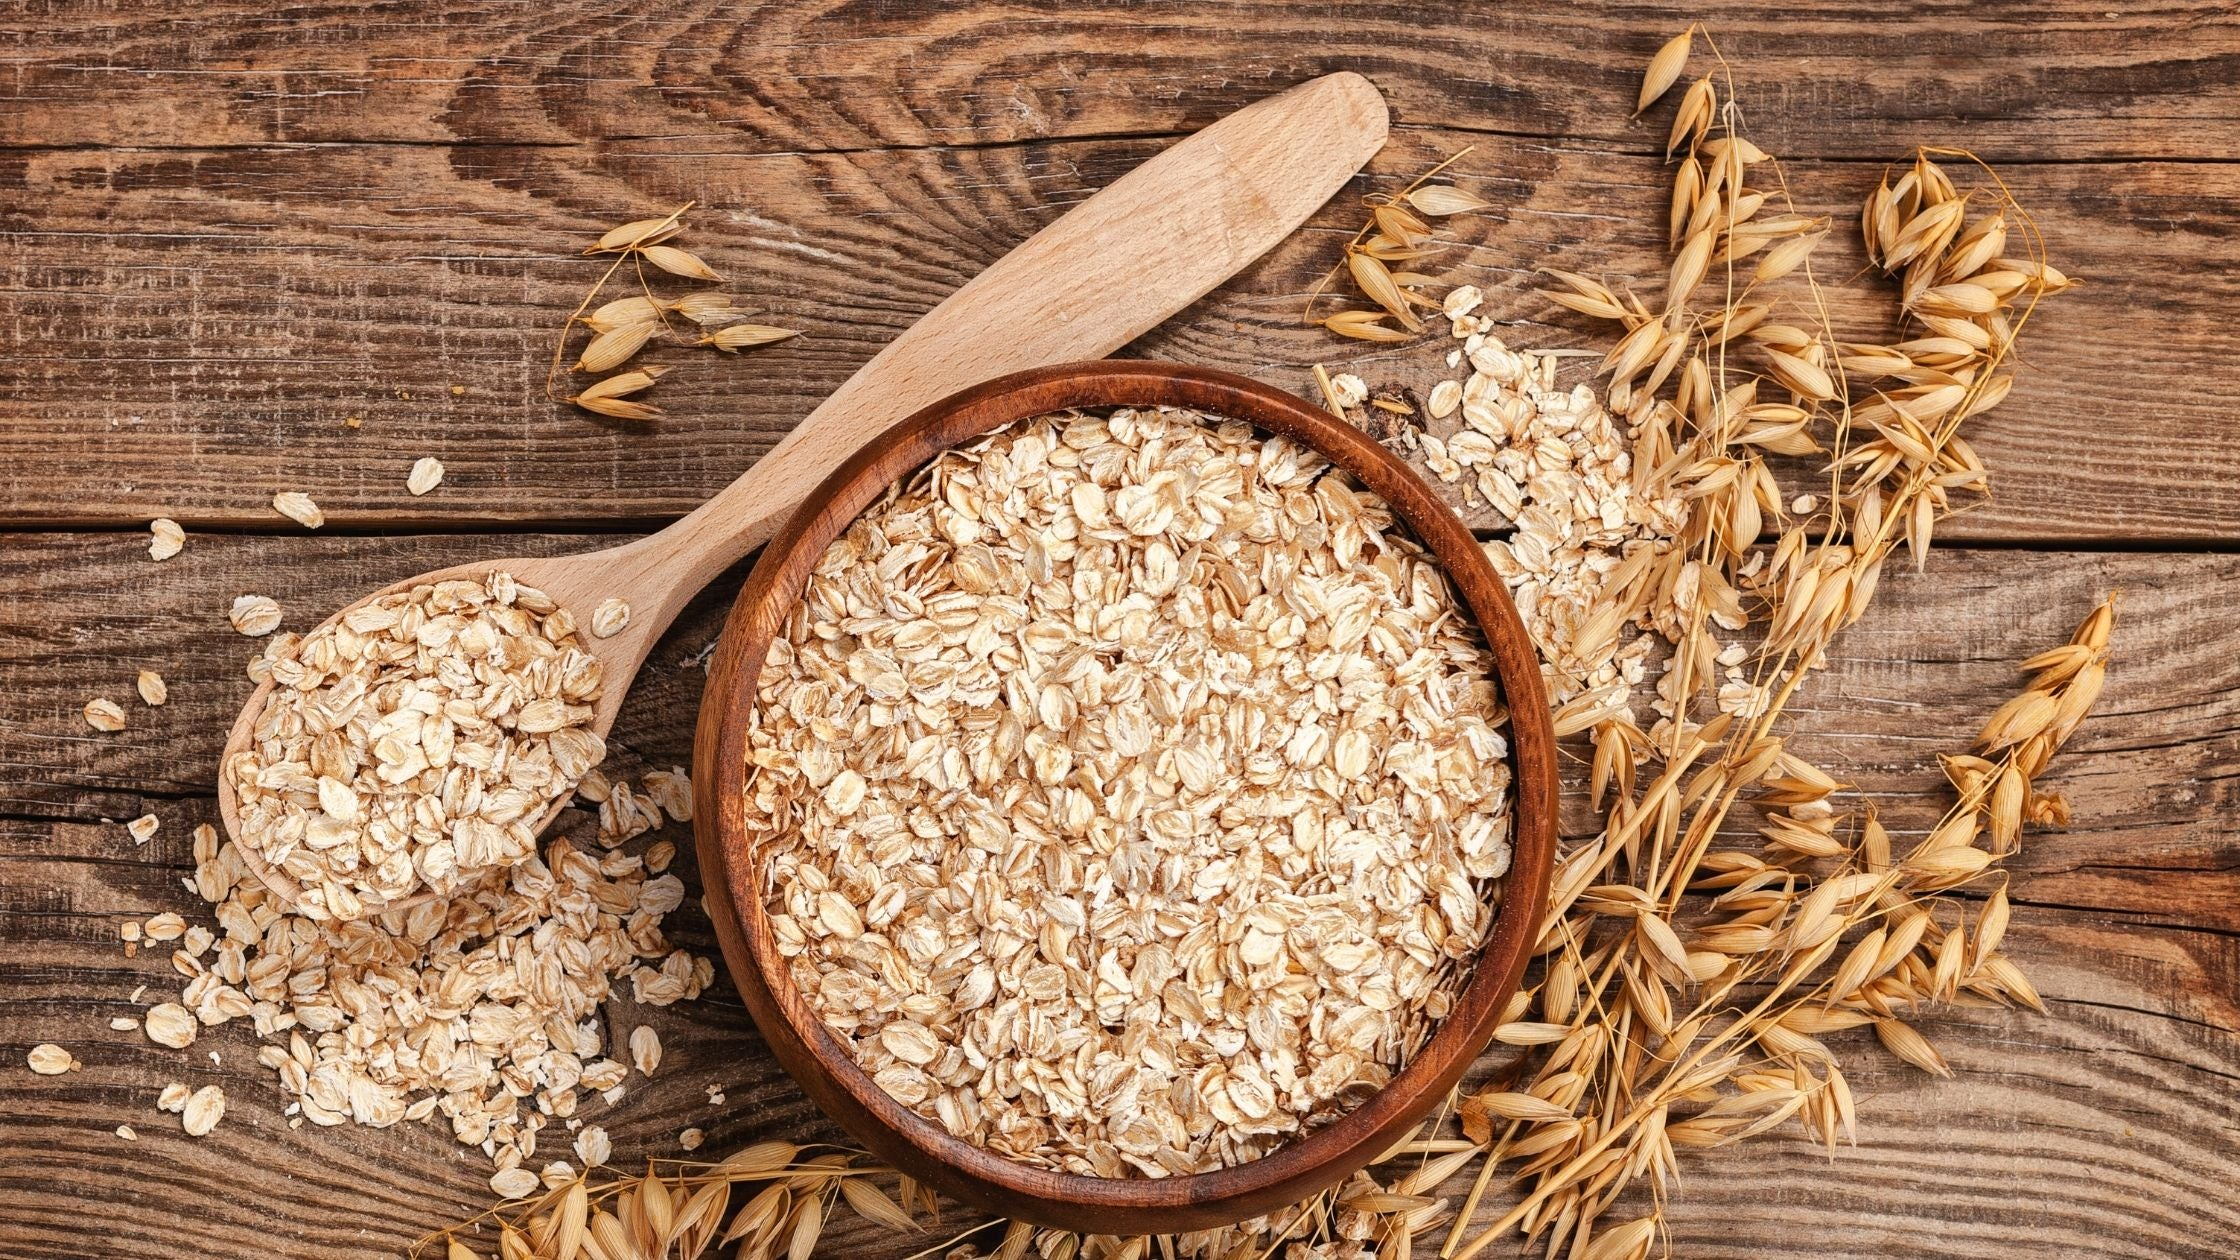 Supercharge Your Skin With Colloidal Oatmeal